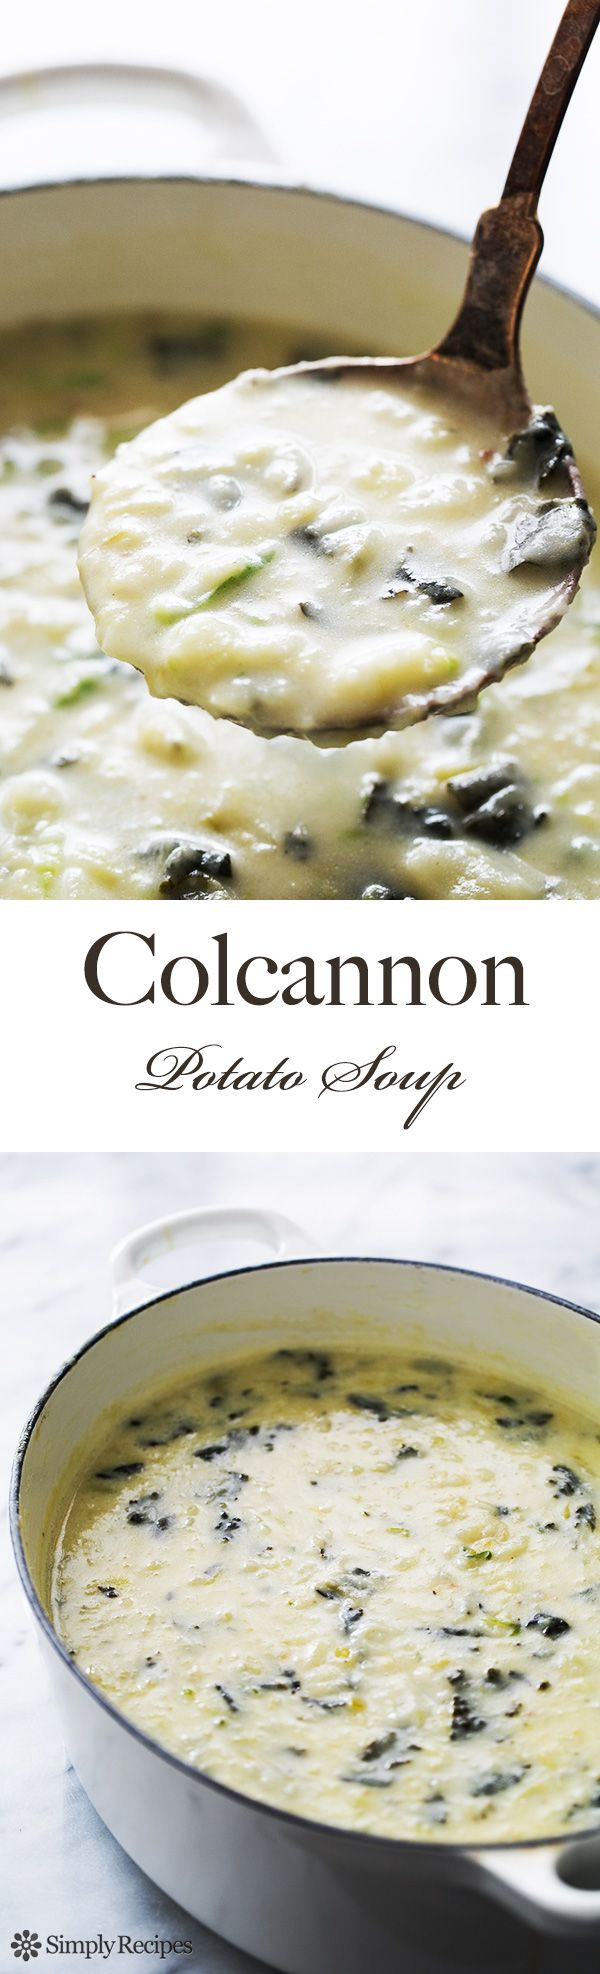 Hearty Colcannon Potato Soup! Like Irish colcannon, but in soup form. With russet potatoes, cabbage, kale, stock, and cream. This soup will keep you warm on a cold winter day. And it's so easy to make! #glutenfree #StPatricksDay On SimplyRecipes.com